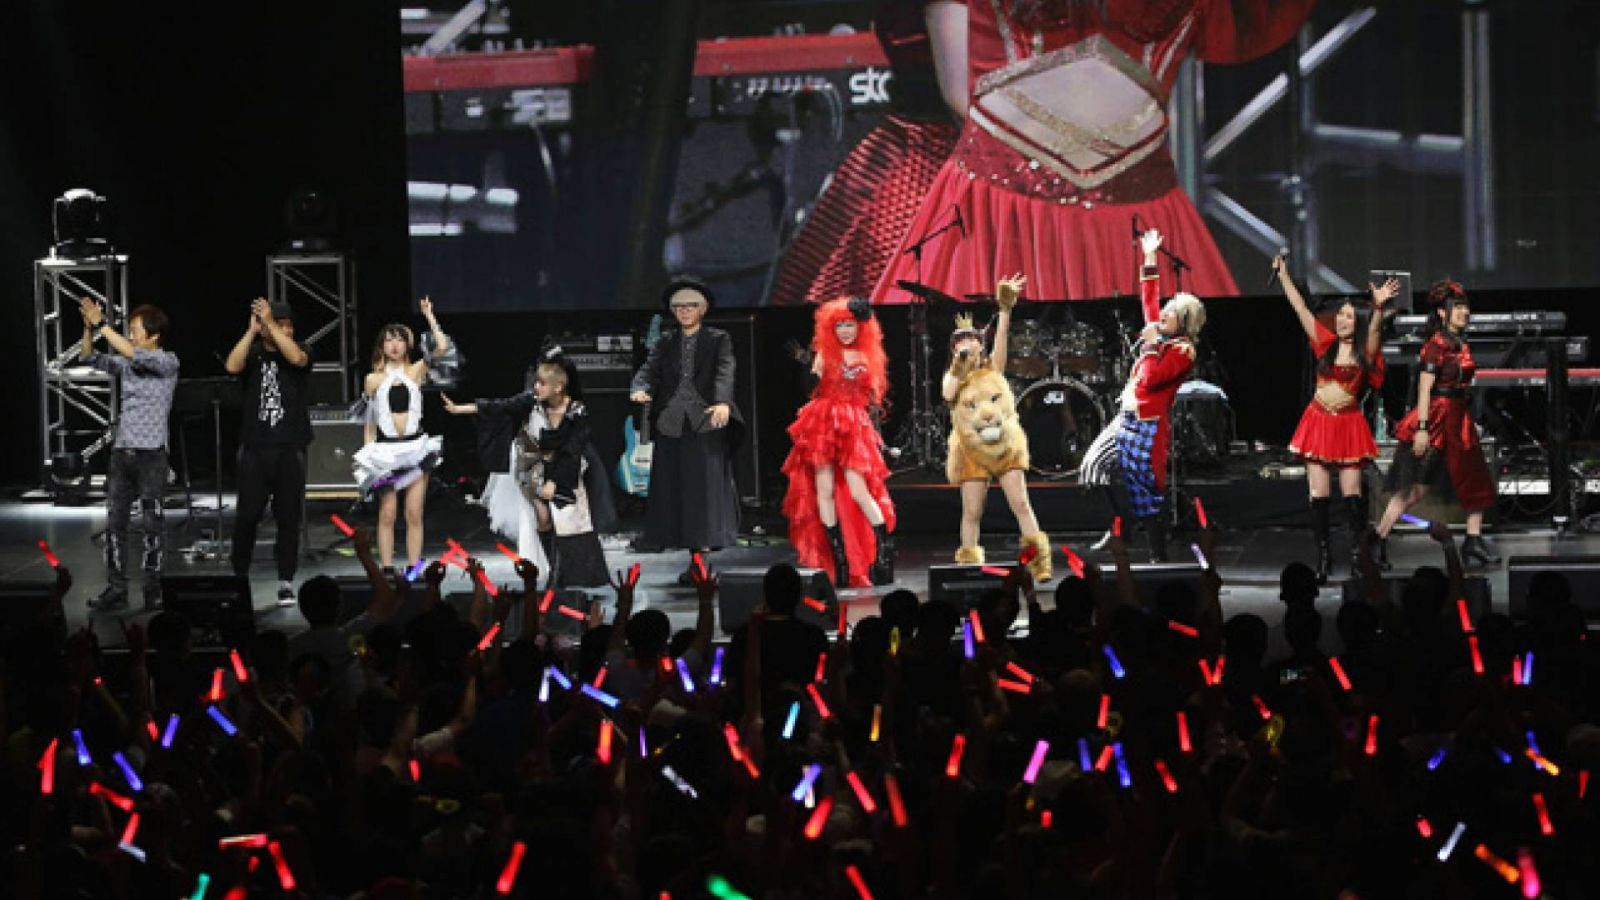 Anisong World Matsuri ~Japan Super Live~ at Anime Expo 2017 © Anisong World Matsuri